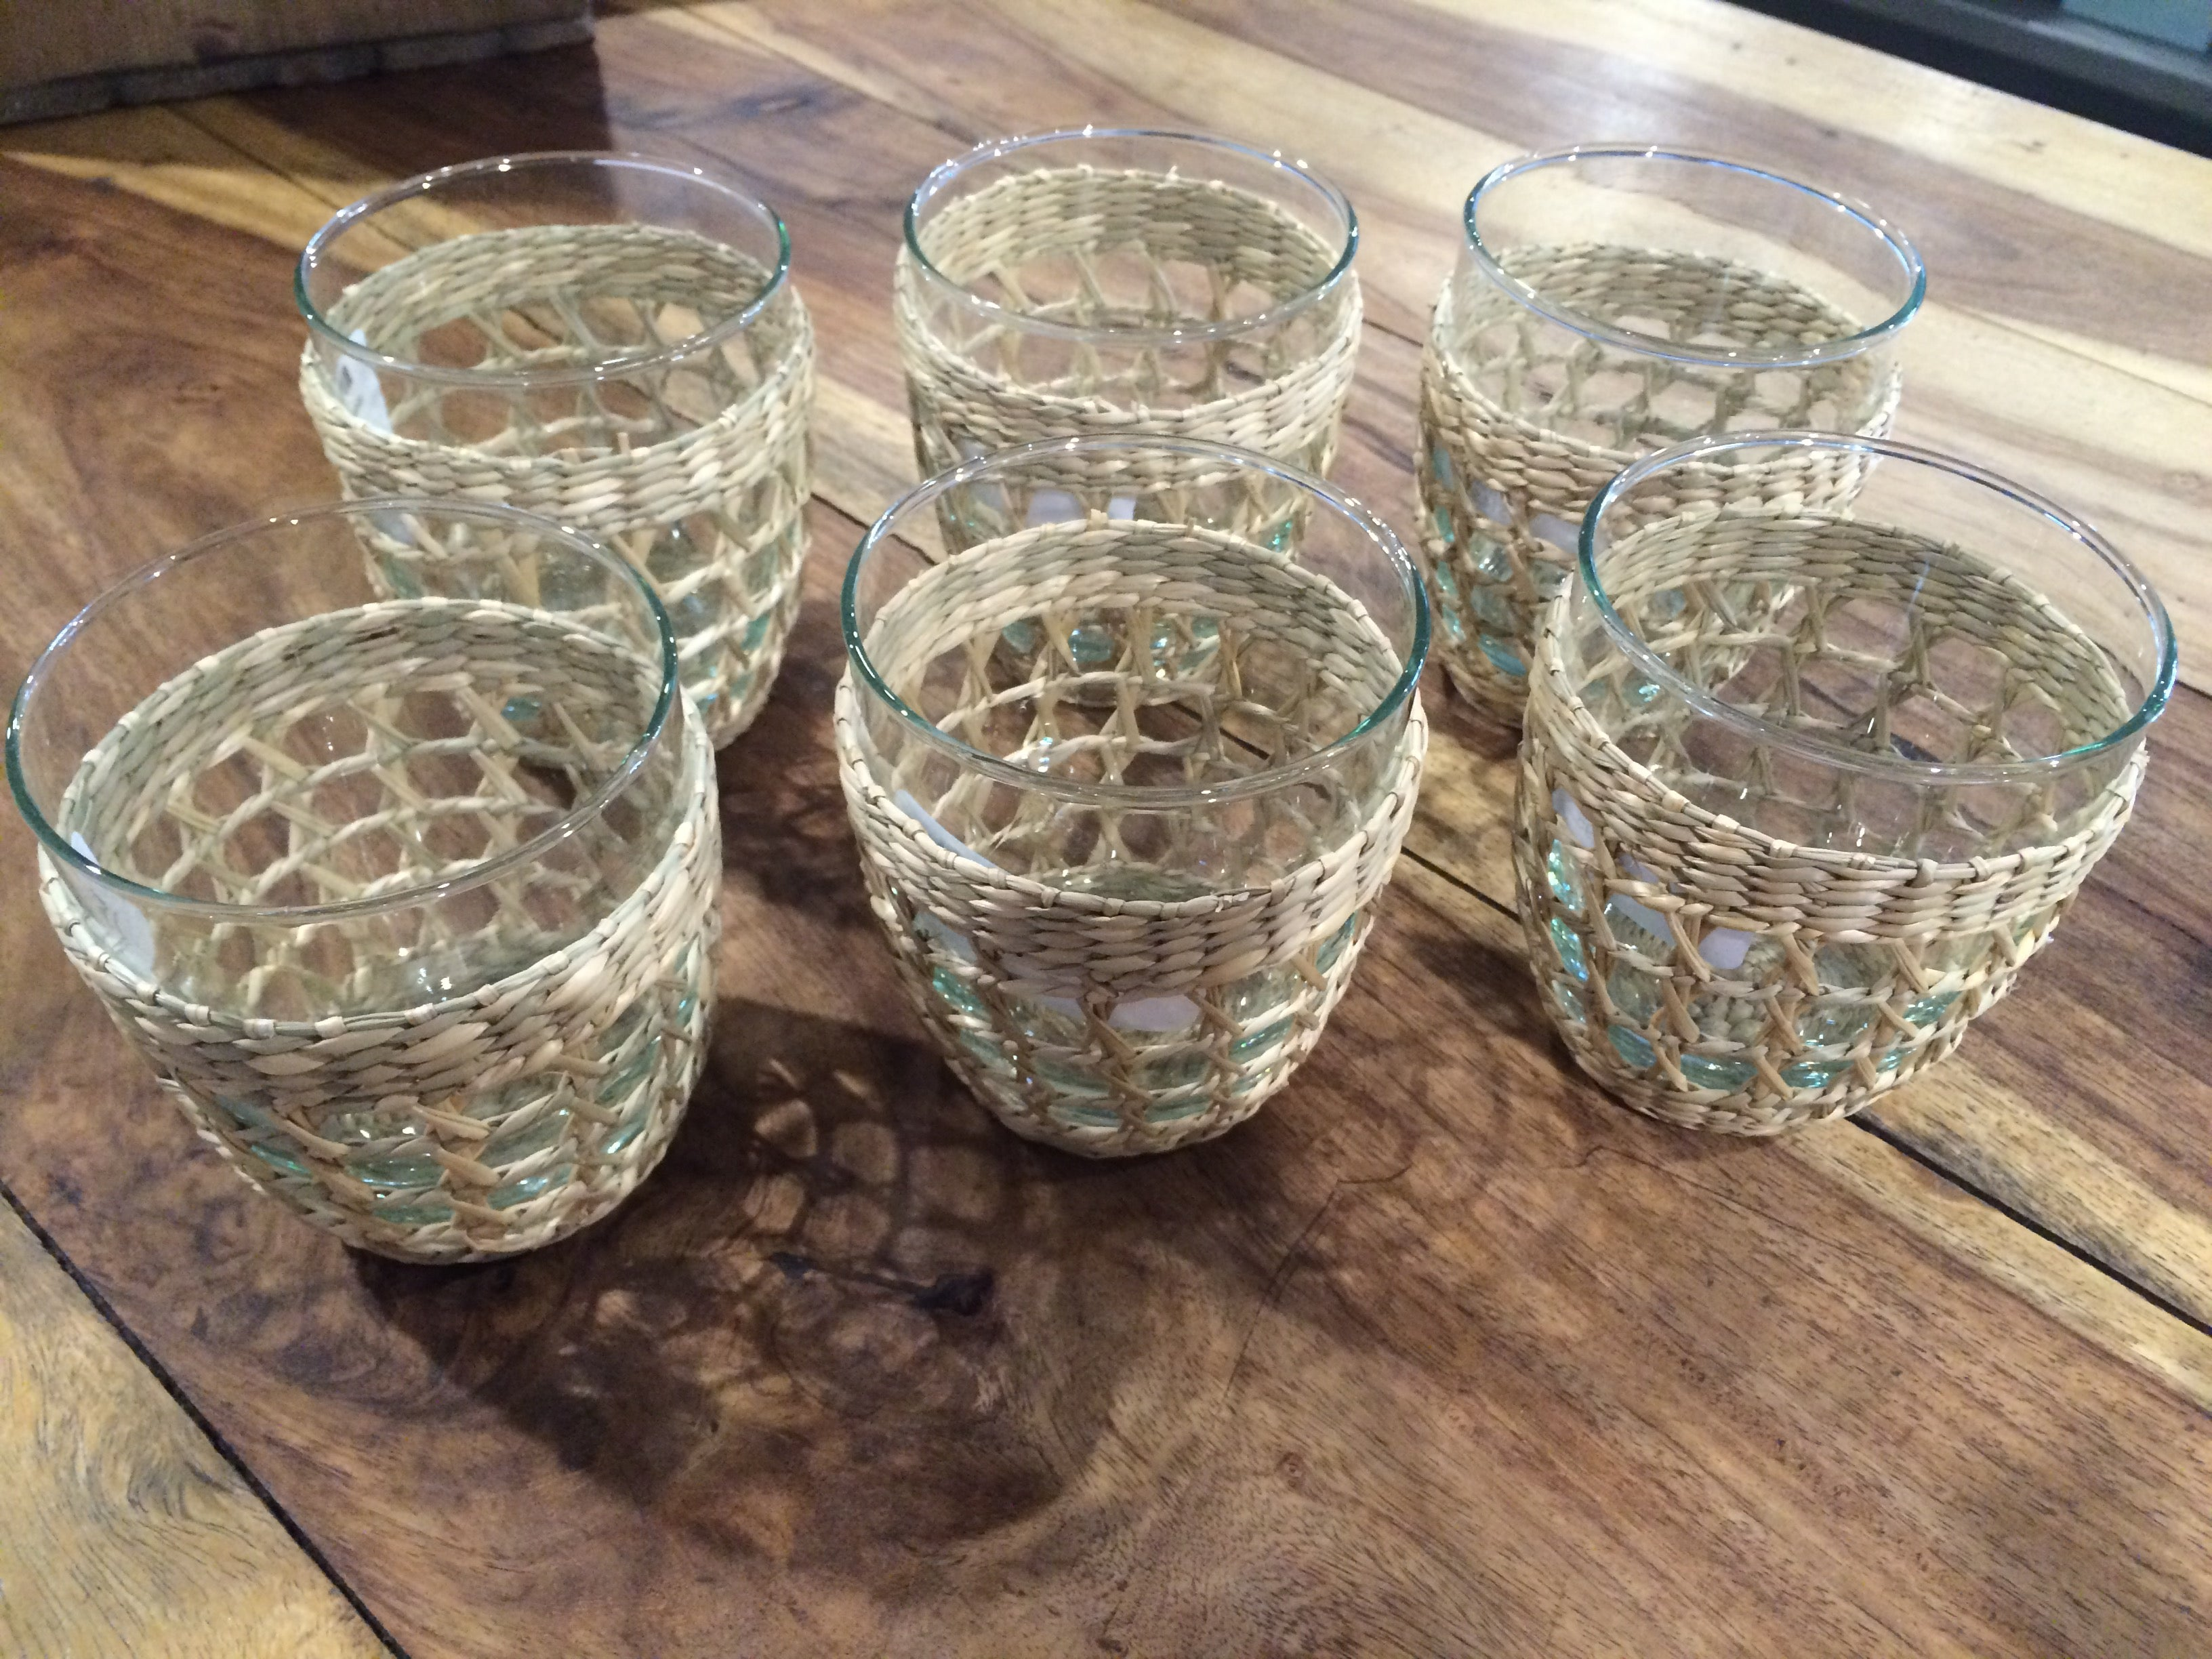 Water Glass with Seagrass Weave